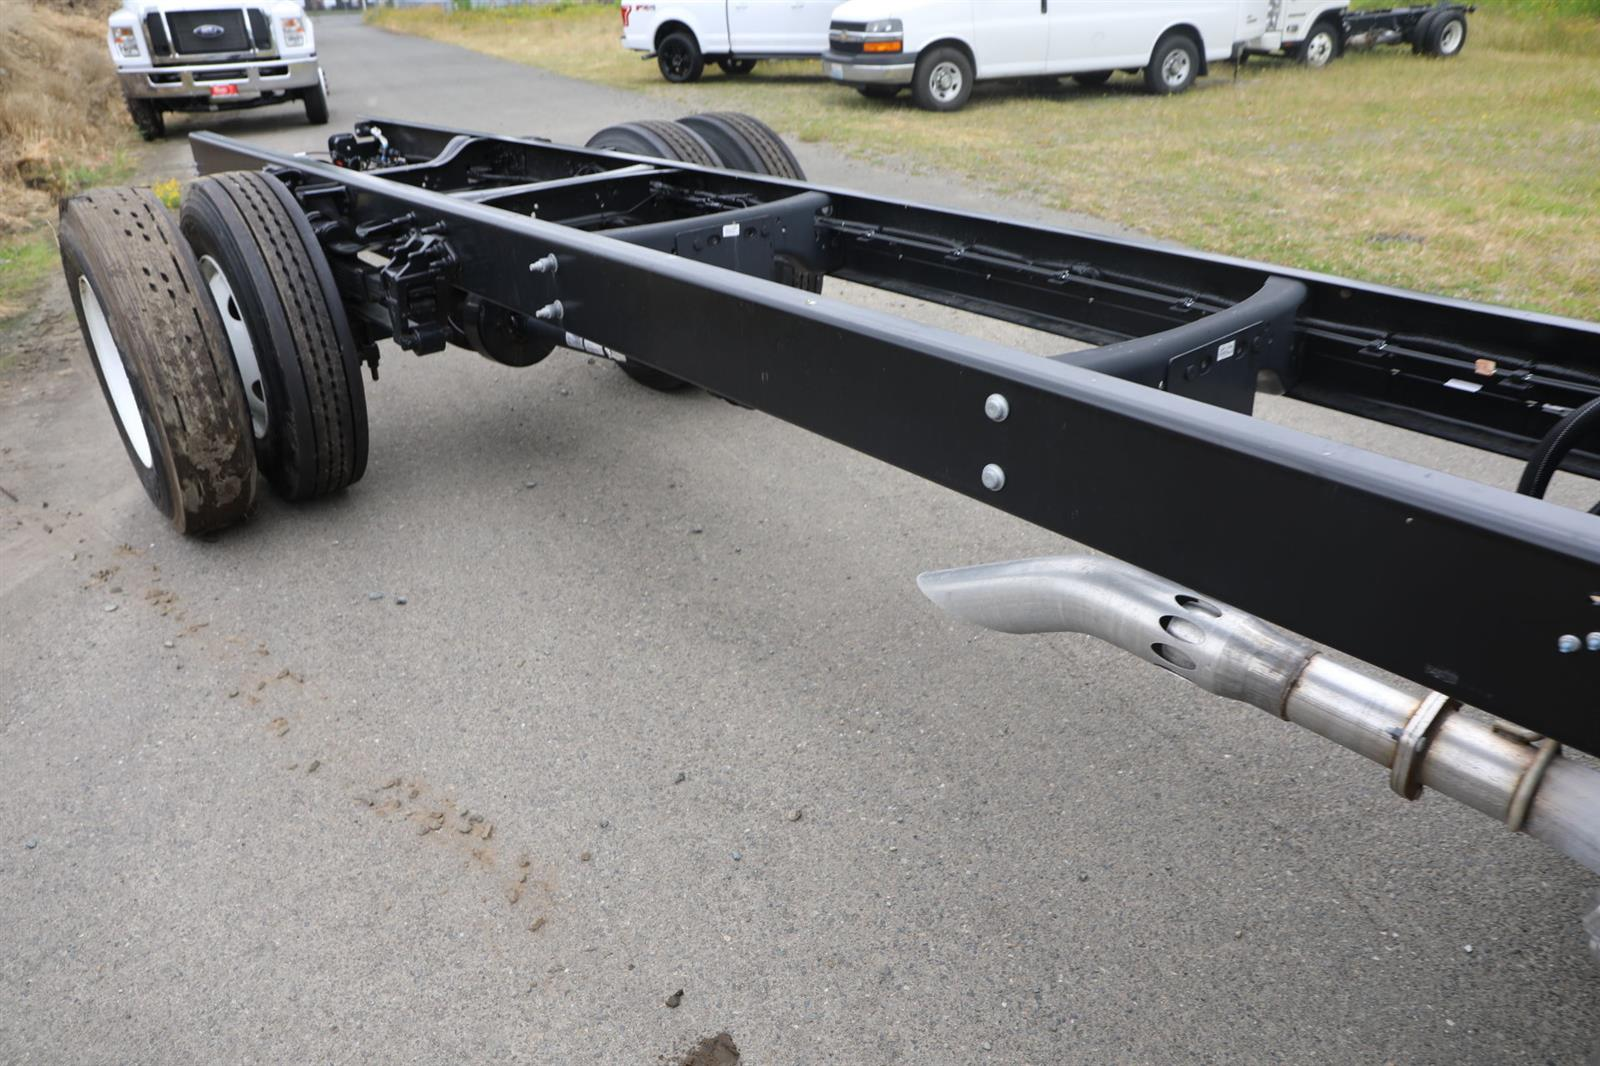 2021 Ford F-650 Regular Cab DRW 4x2, Cab Chassis #E9343 - photo 6